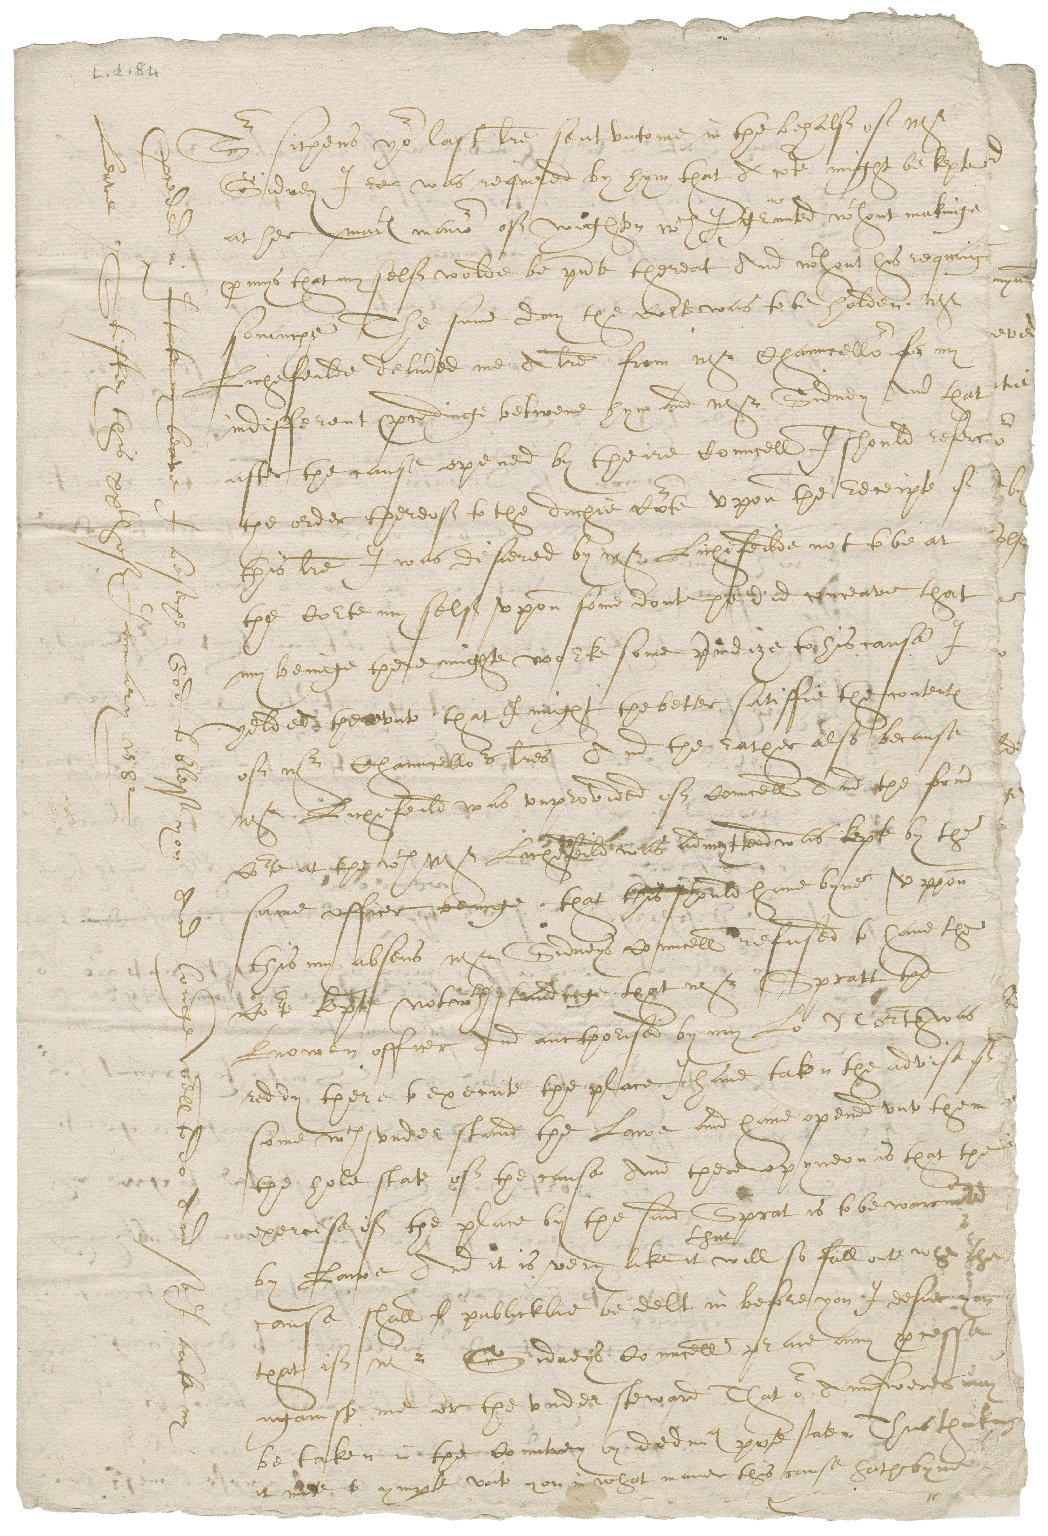 Letter from Nathaniel Bacon to John Brograve, attorney of the Duchy of Lancaster : copy